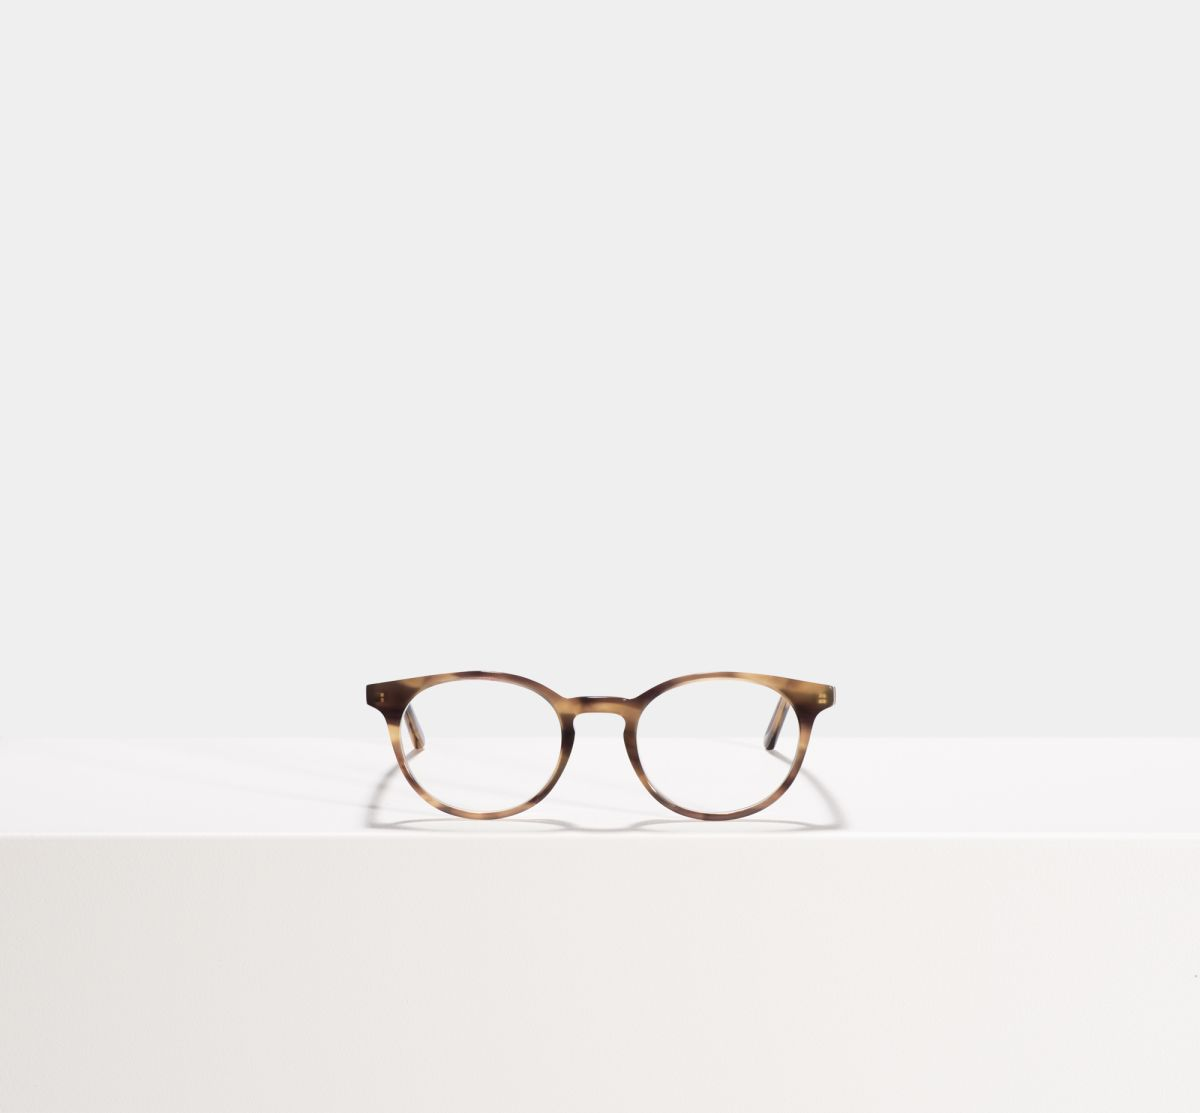 Steve round acetate glasses in Taupe Tortoise by Ace & Tate